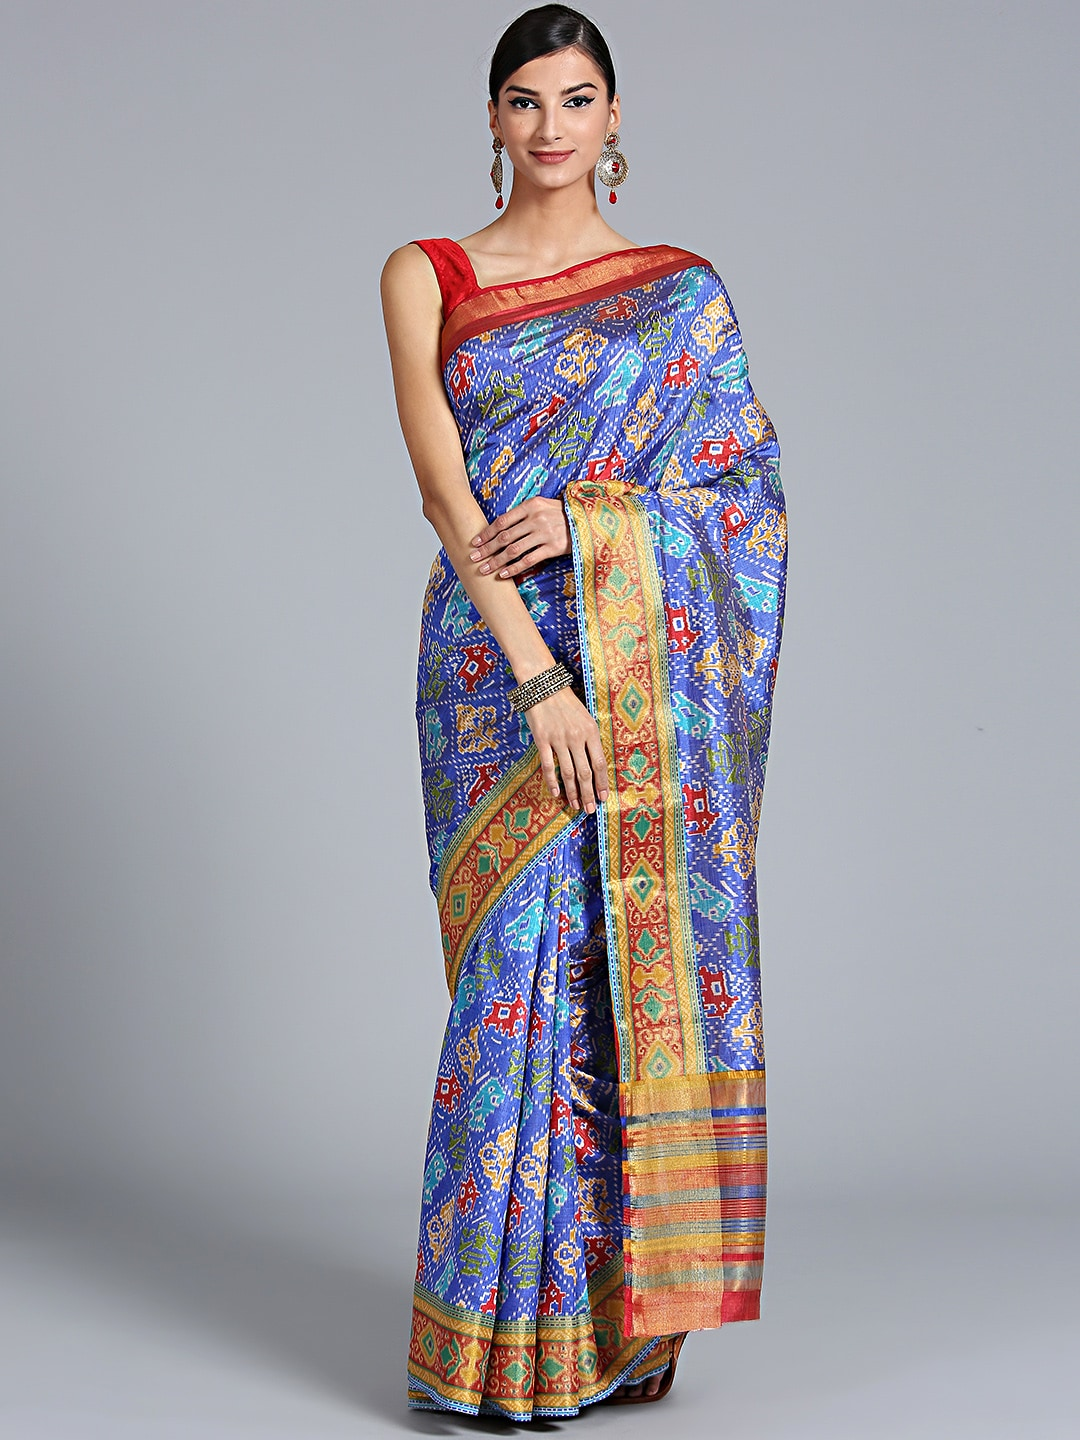 eb1f0588448 Pochampally Sarees - Buy Pochampally Saree Online at Best Price